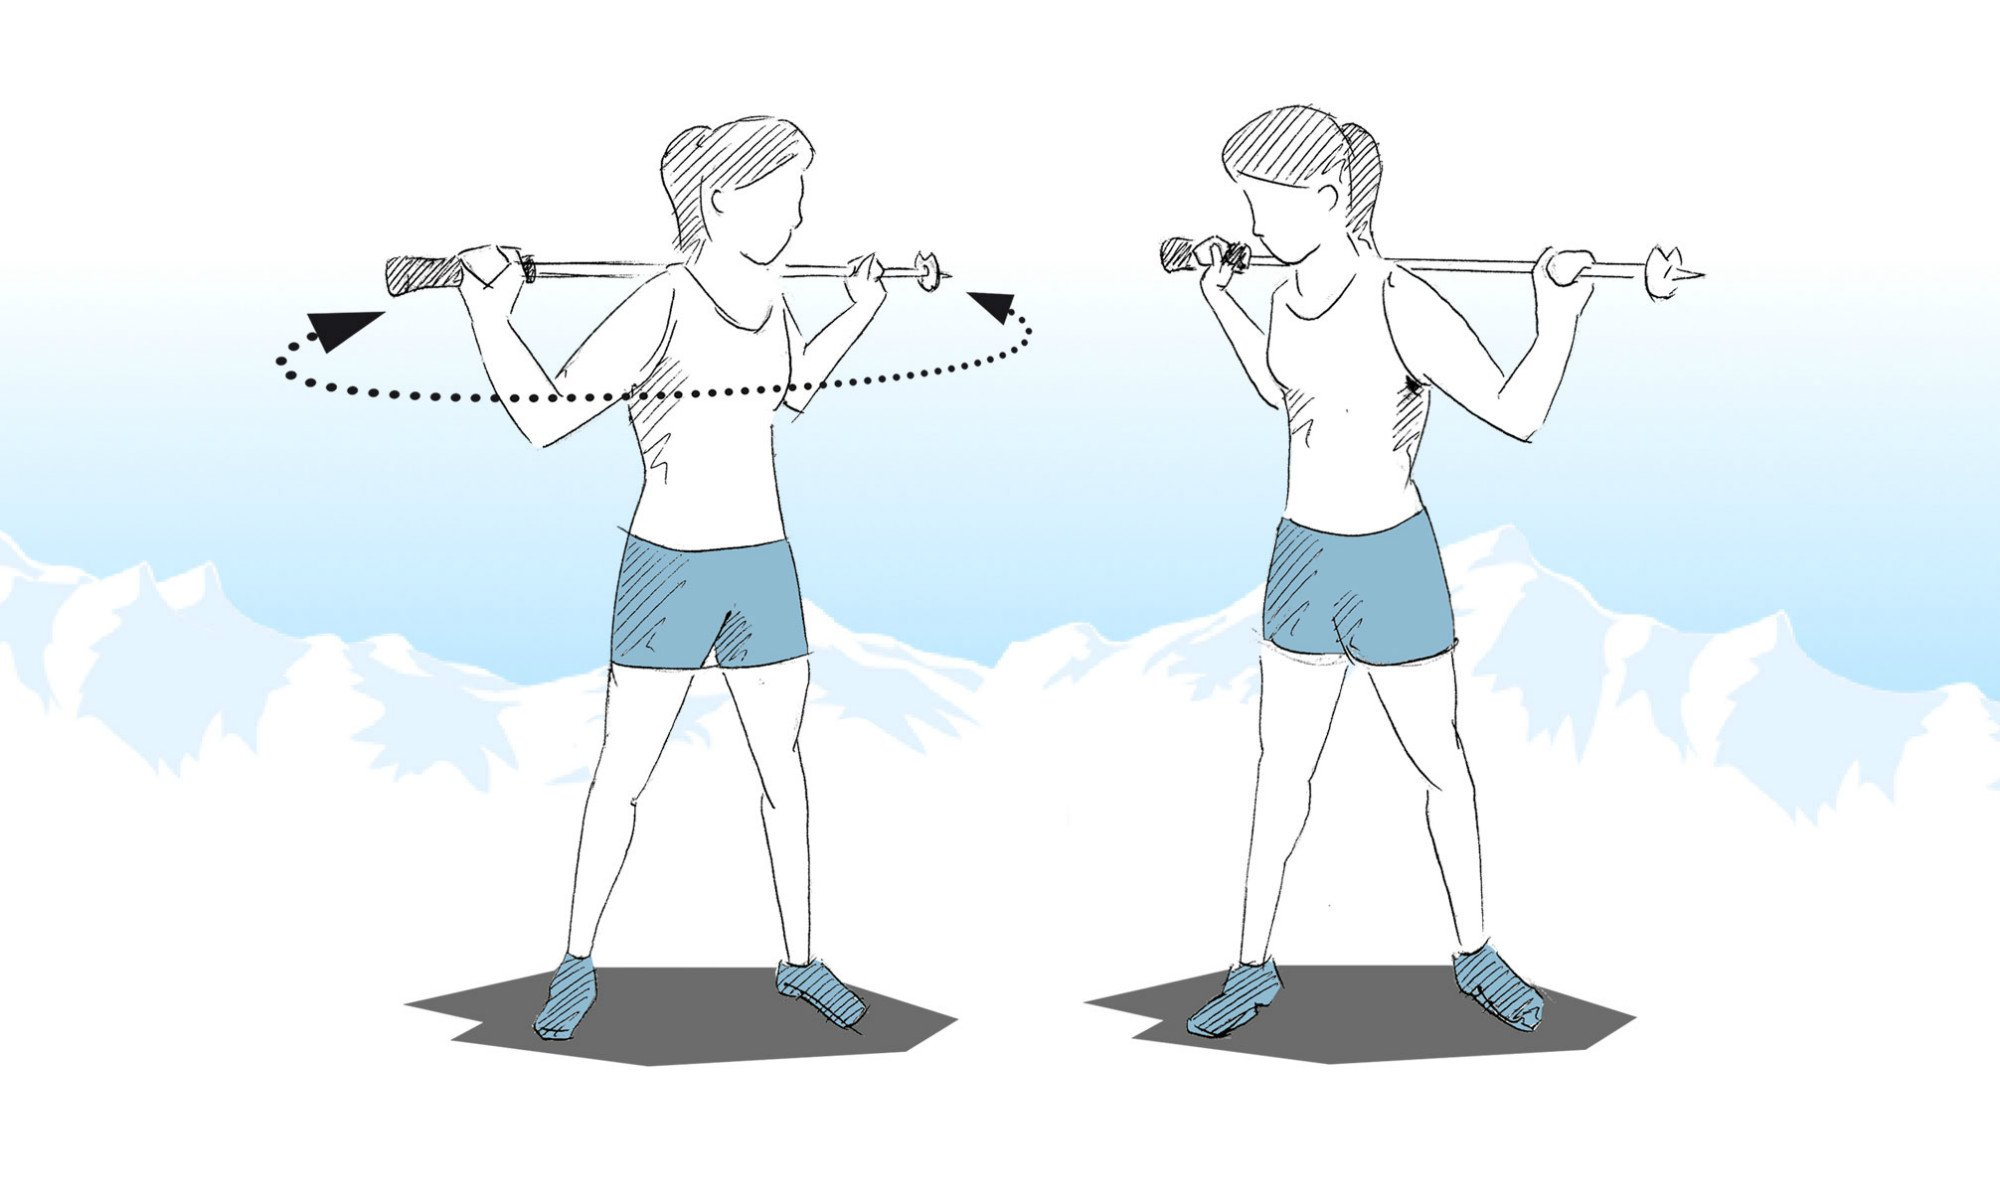 Visualisation of torso rotations with skiing poles.